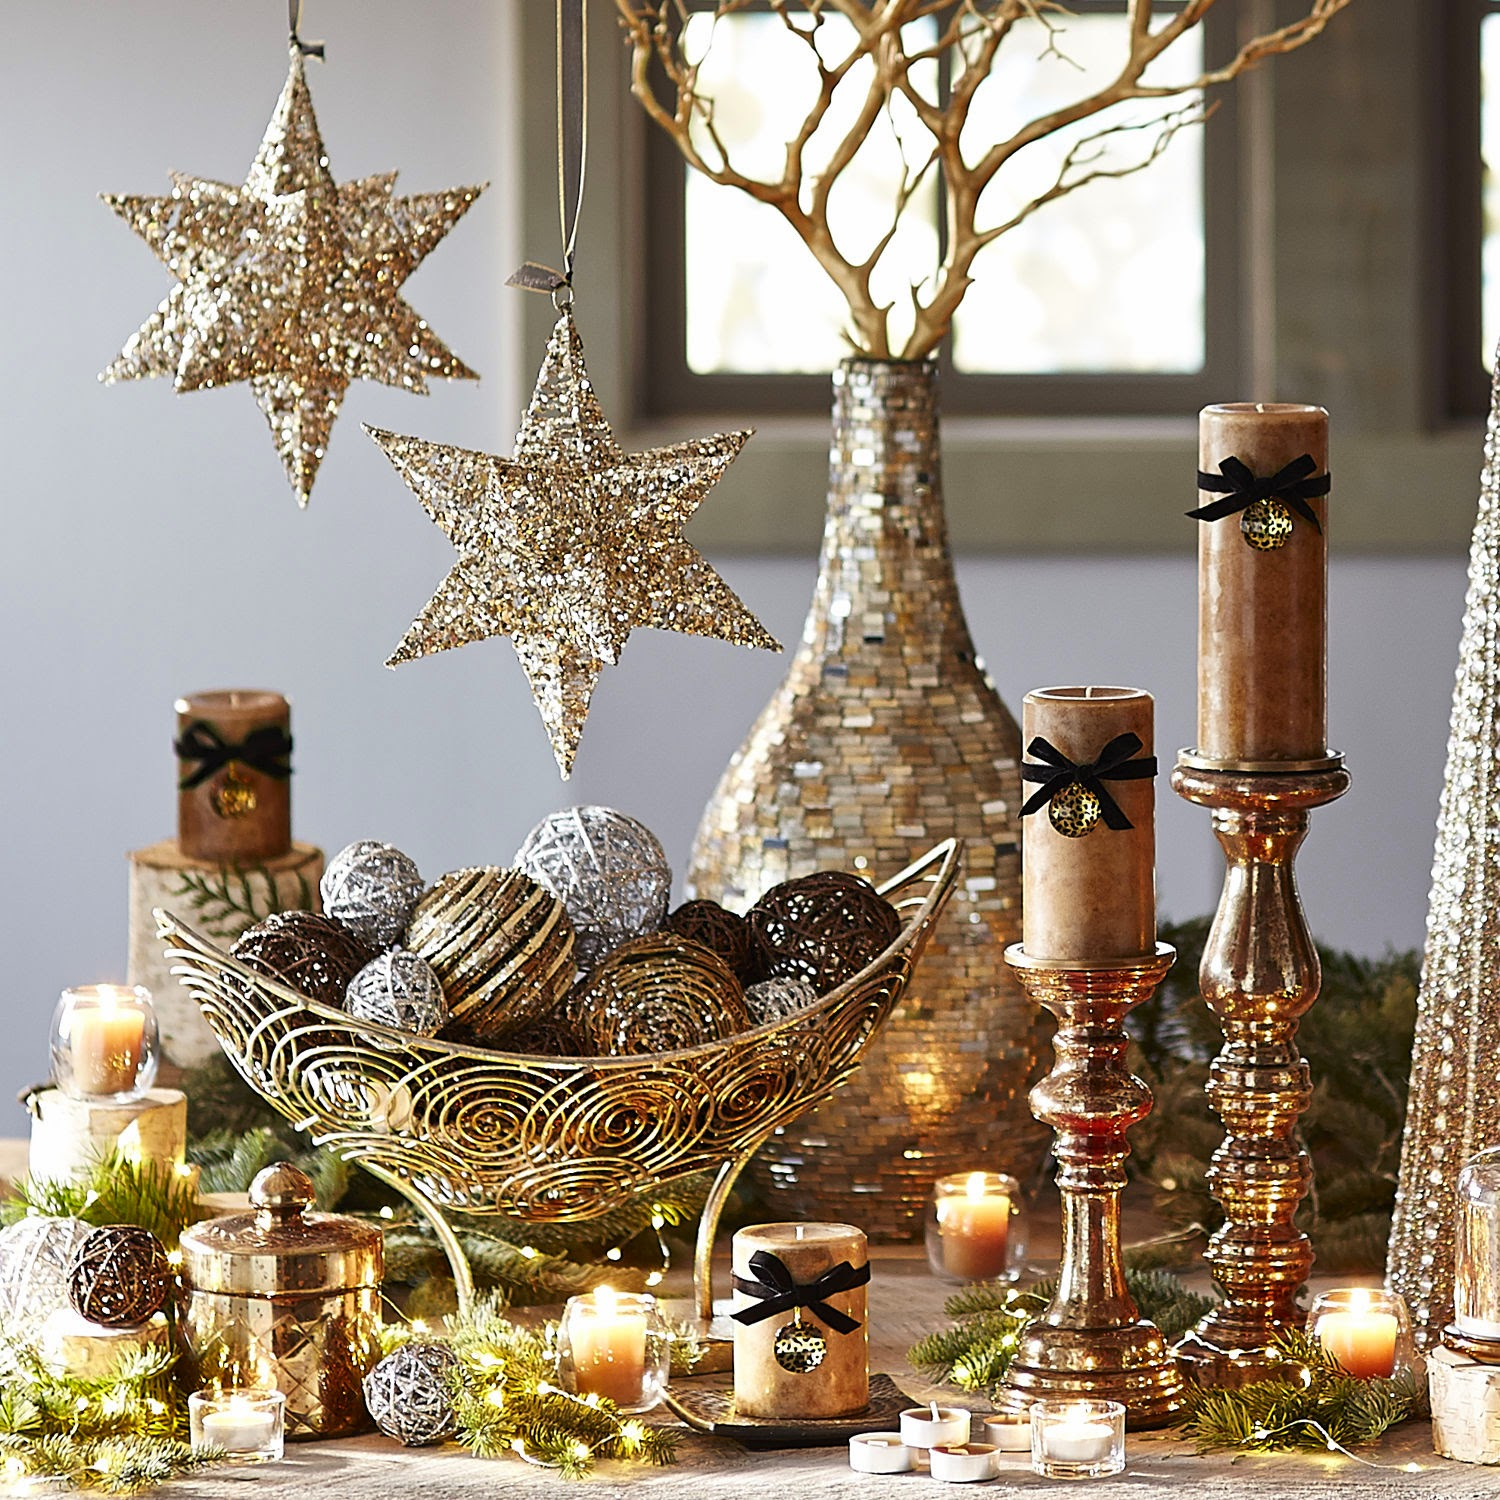 Pier One Decorating Ideas: Pier 1 Christmas Decorations 2017